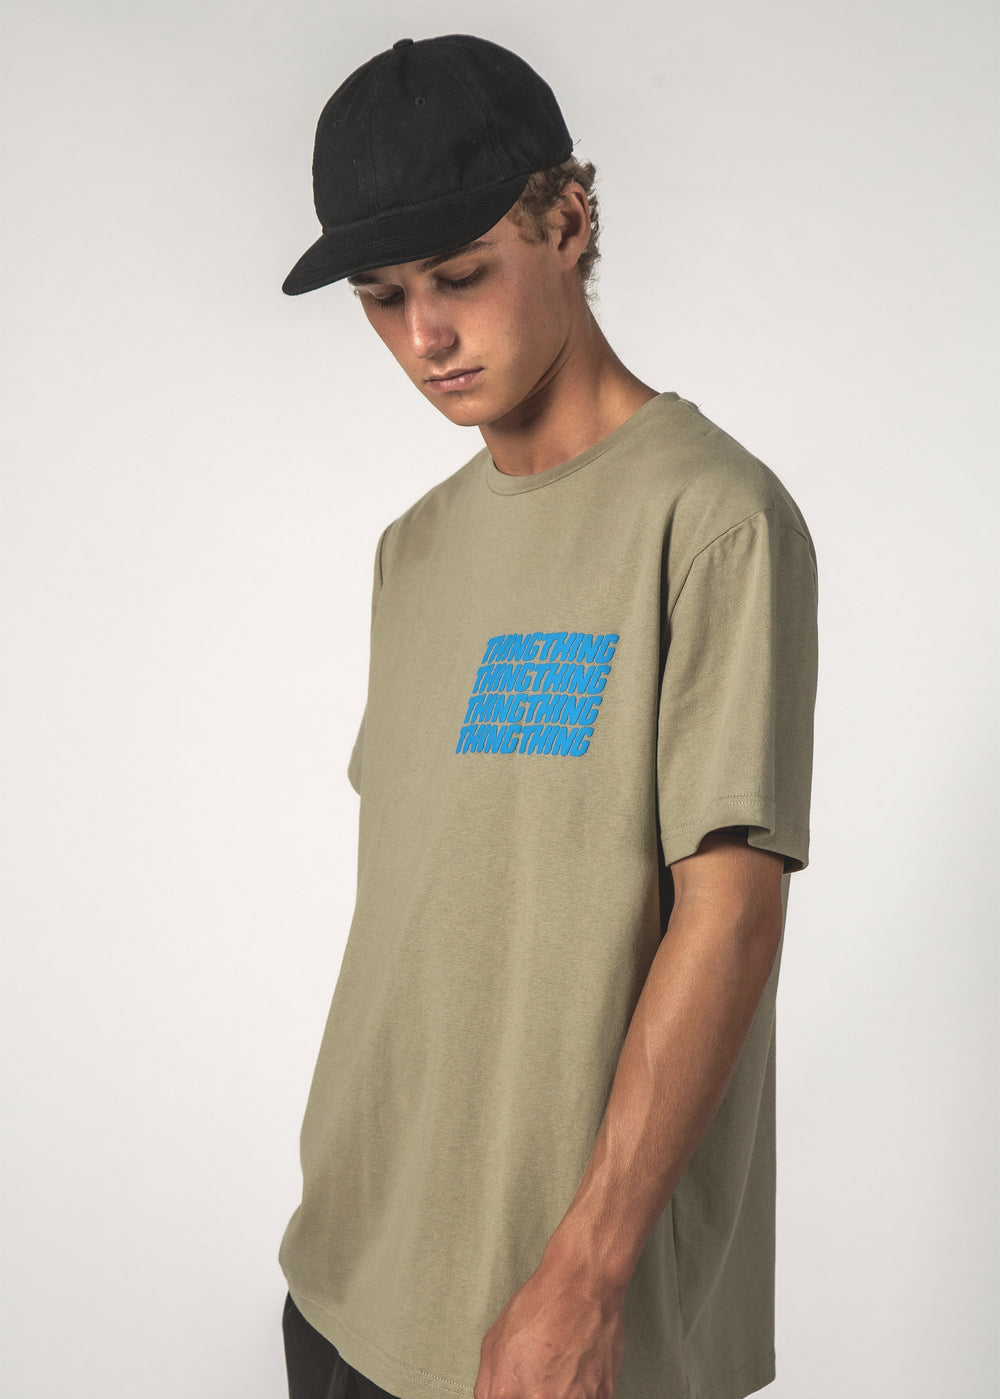 SALE - STACKER SS TEE - Oat Stacker